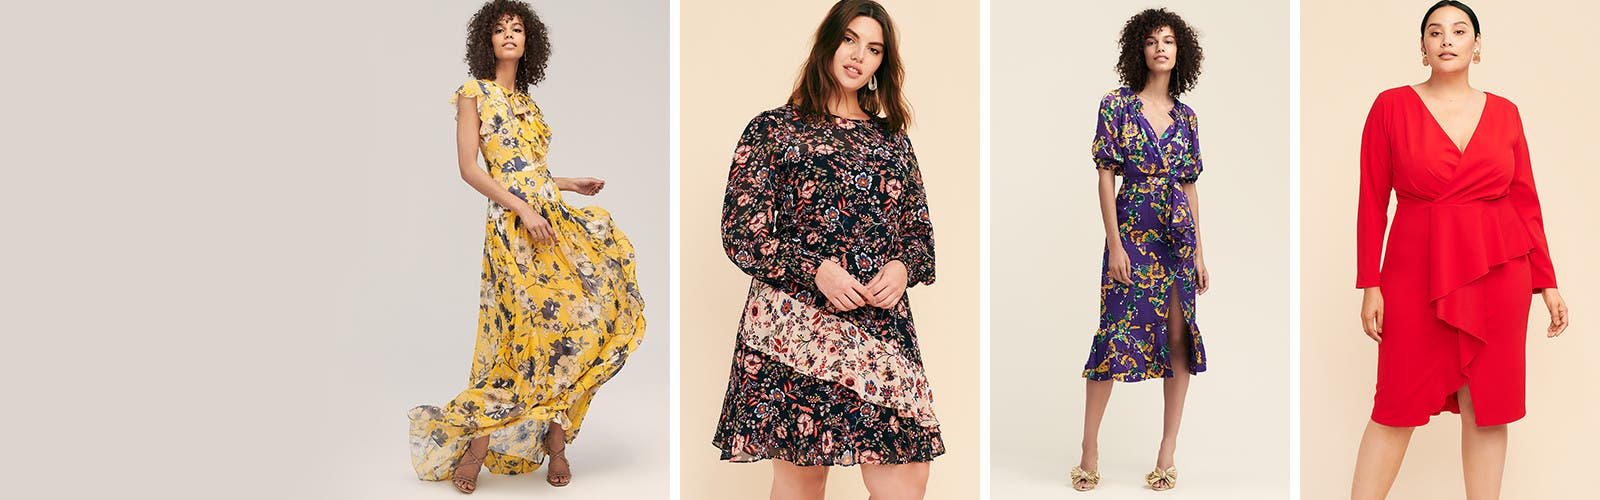 Pretty blossoms + bright hues: women's dresses.